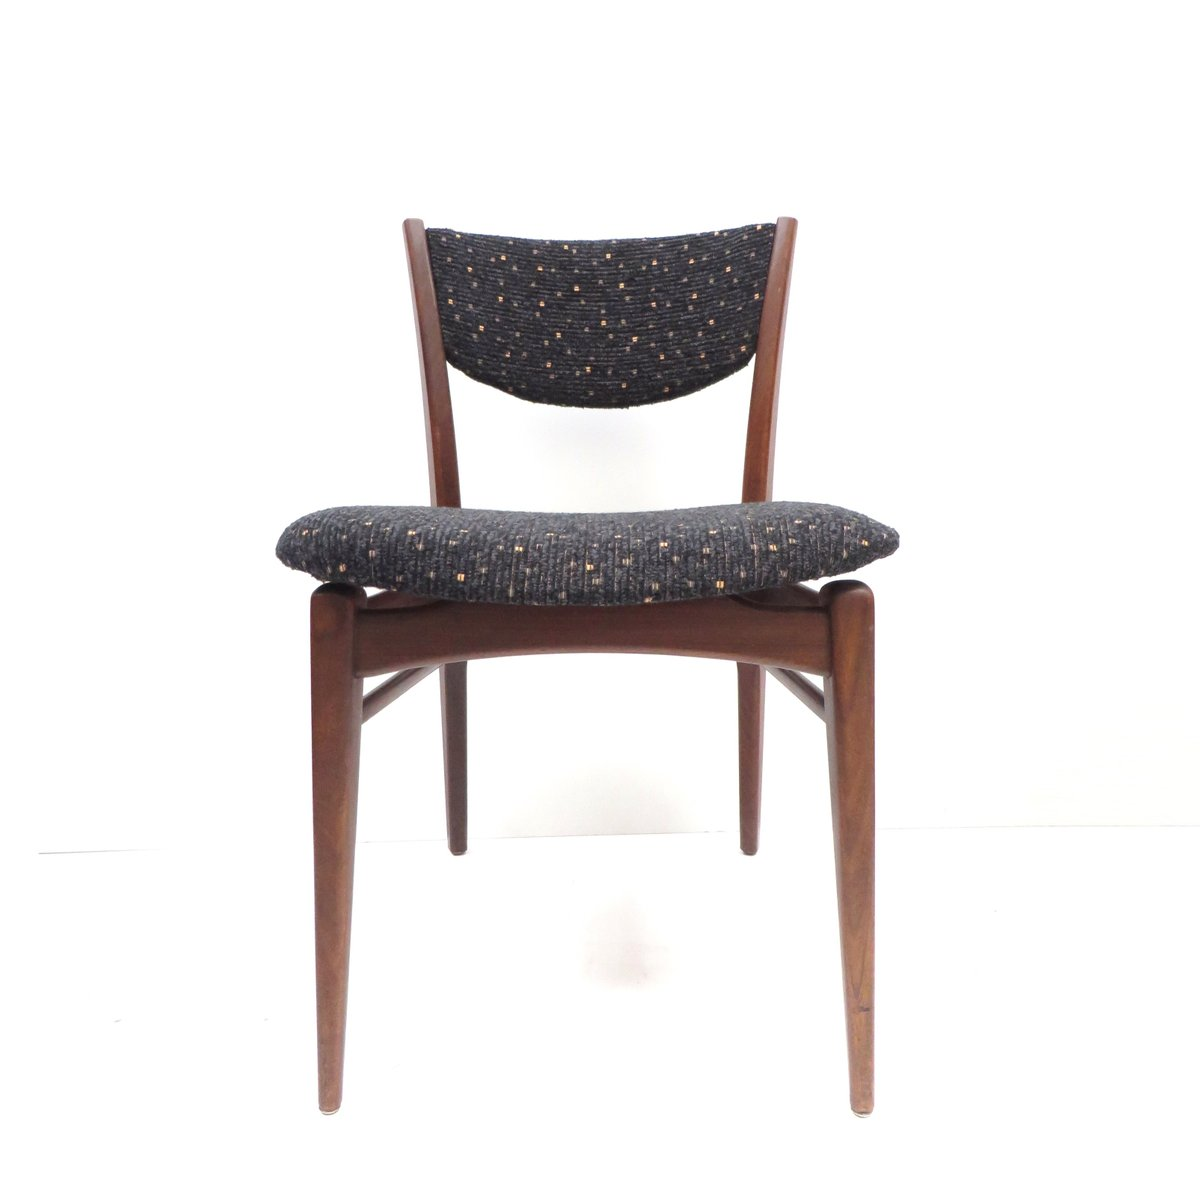 Vintage Teak and Fabric Dining Chairs, Set of 2 for sale at Pamono